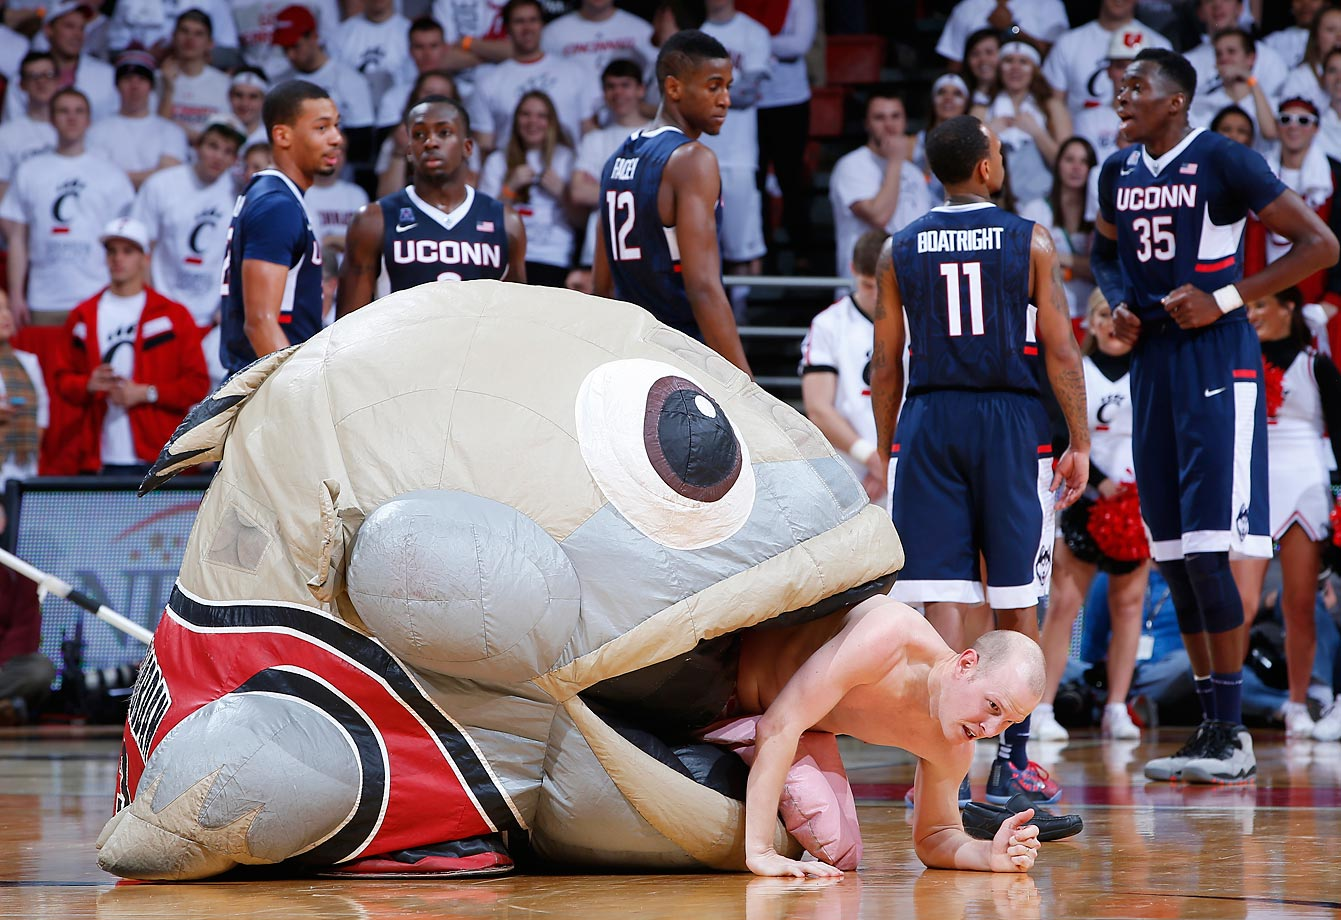 A fish named Mackerel Jordan and a fan take part in a skit during a timeout at the game between the Cincinnati Bearcats and Connecticut Huskies.